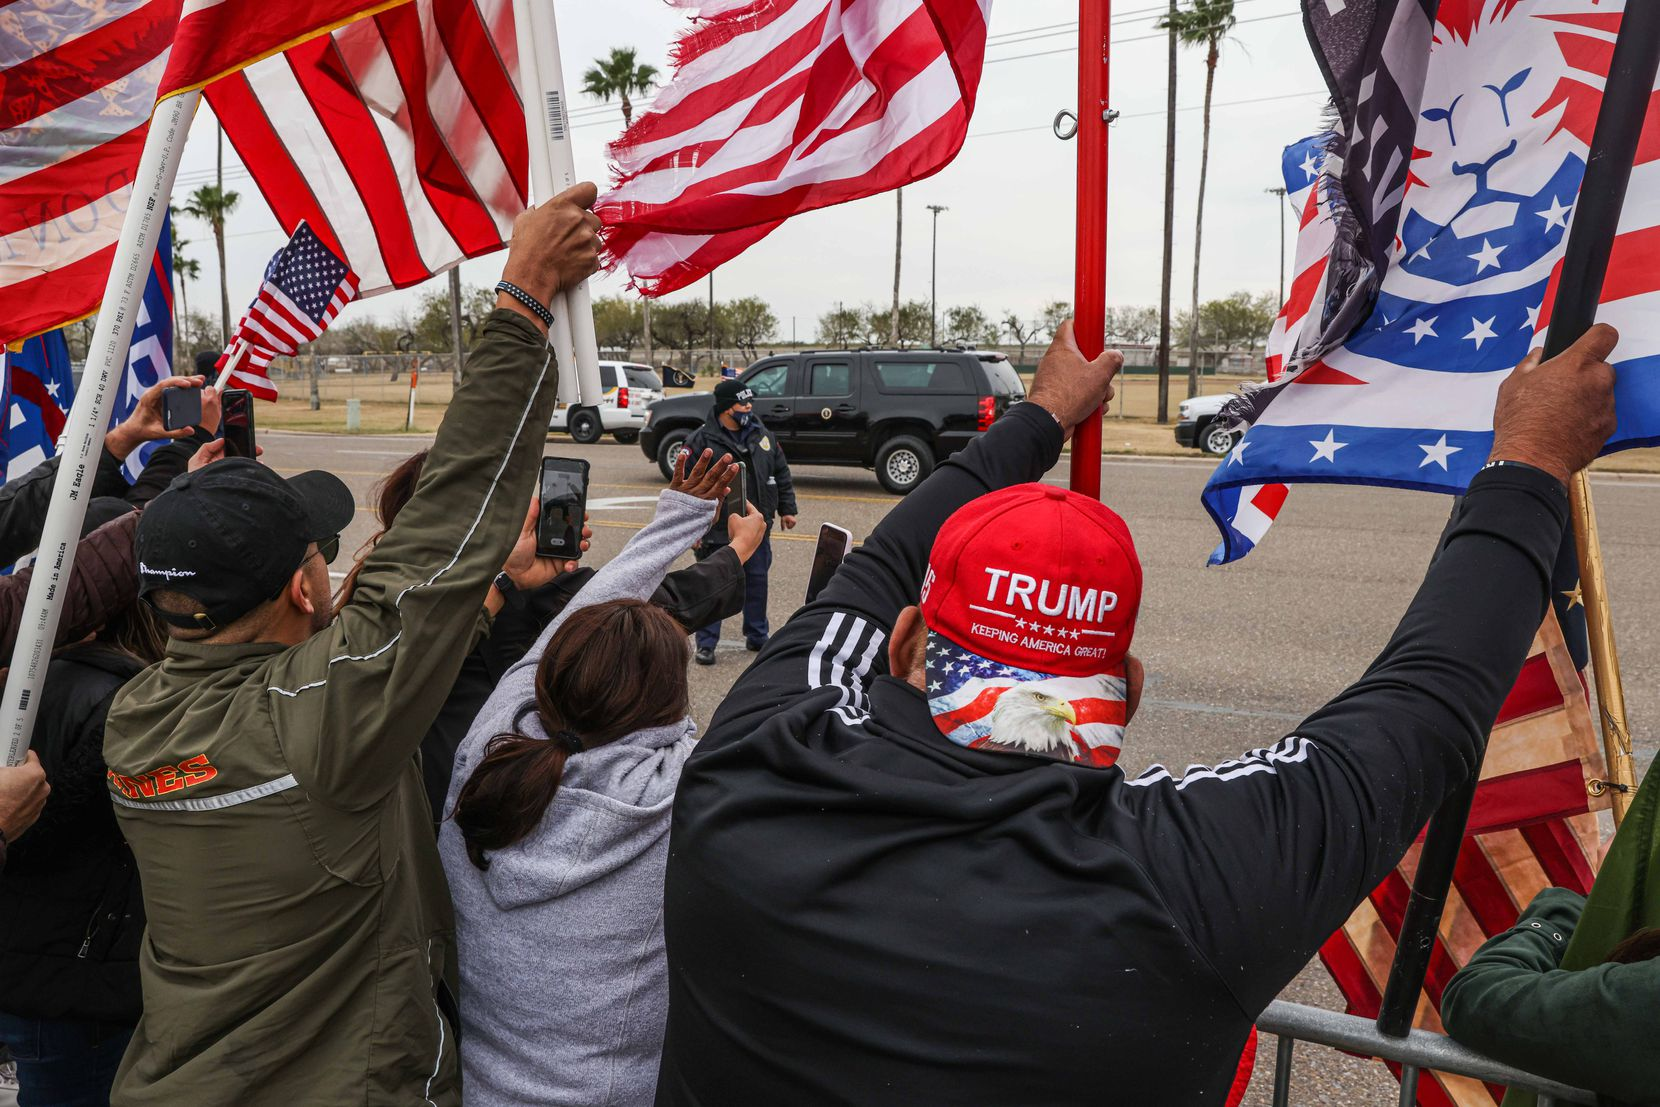 President Donald Trump motor arcade passes in front of the rally in support as he visit part of the wall built under his mandate in McAllen on Tuesday, January 12, 2021.